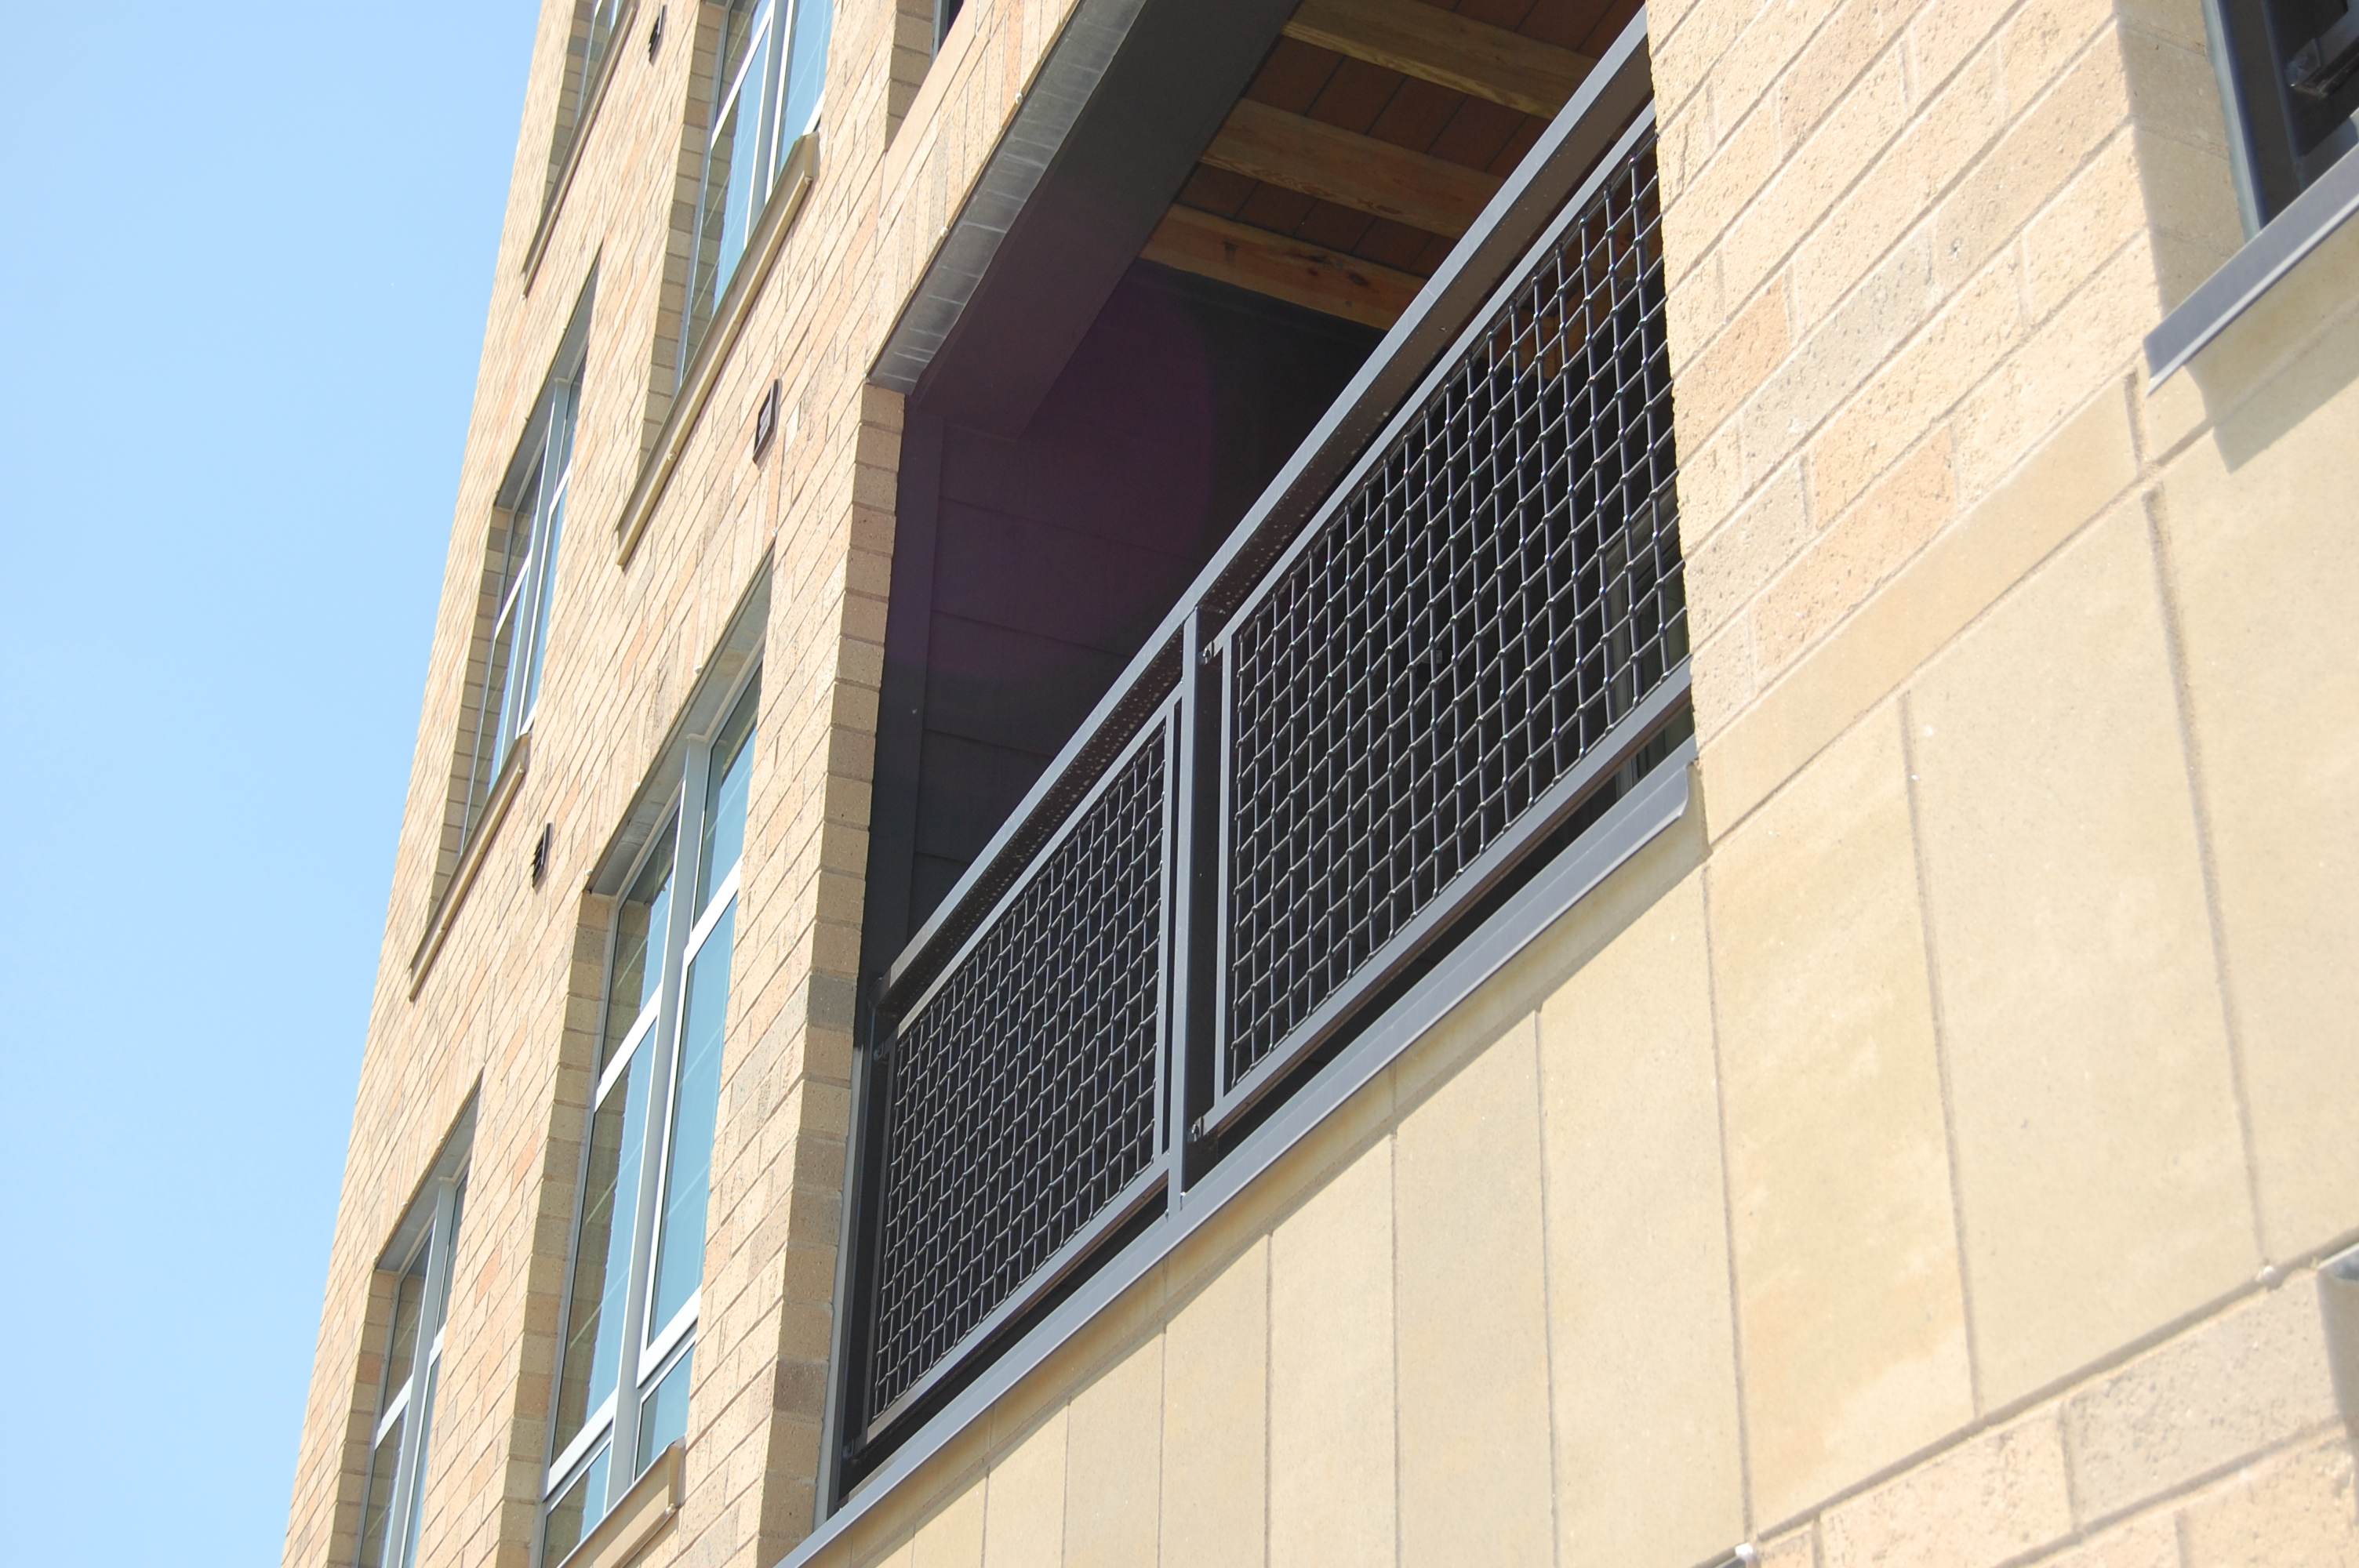 Metal fabric offers corrosion resistance and durability.